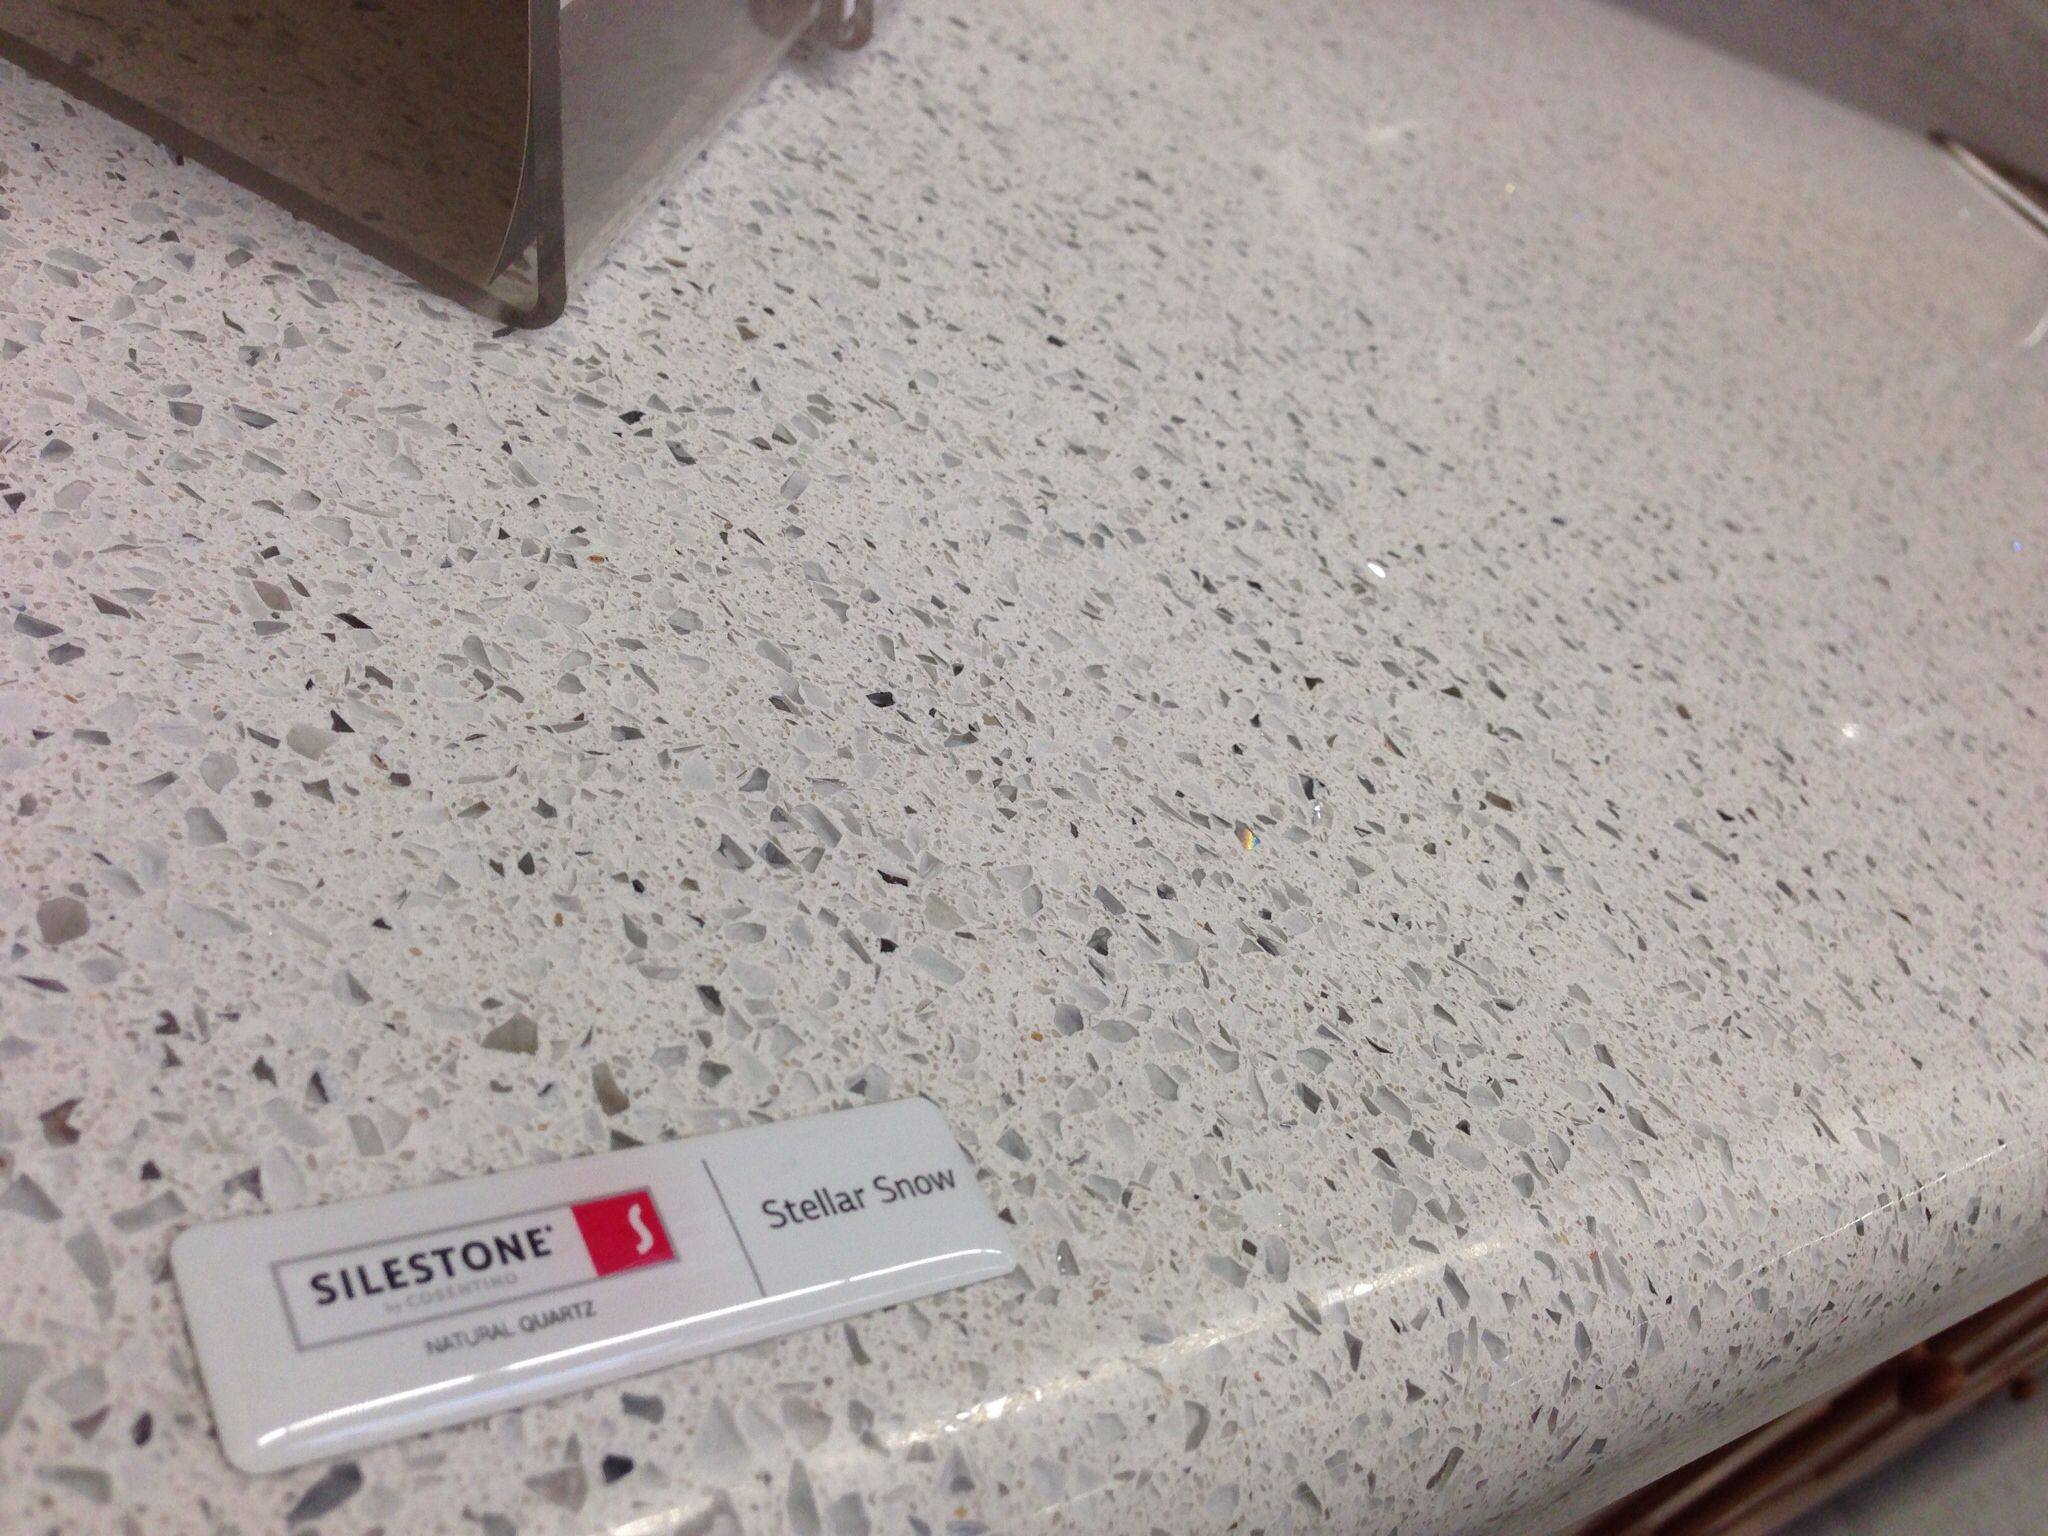 Stellar Snow Countertop From Silestone It Sparkles And Throws Rainbows Because Has Mirror Gl